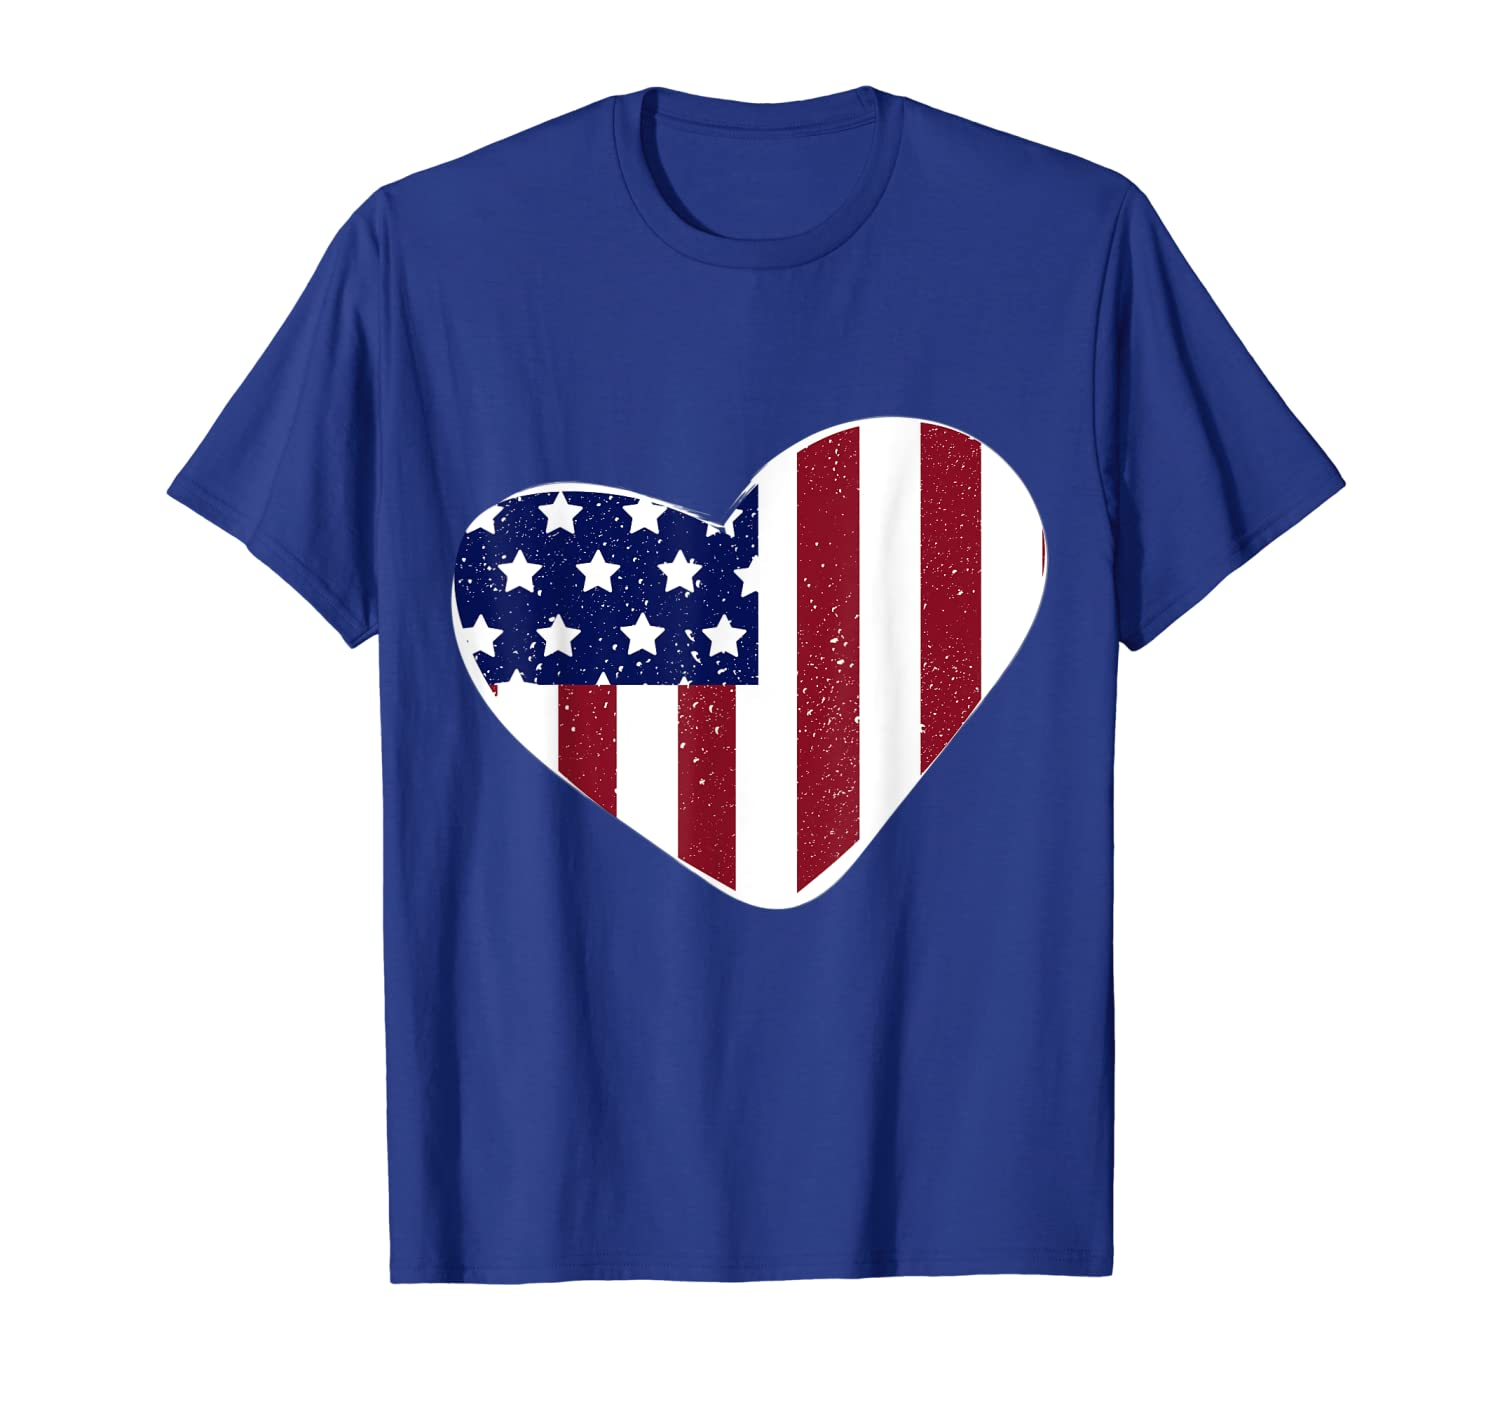 USA Flag Heart 4th of July Outfit Women Clothes Kids Gift T-Shirt-ANZ